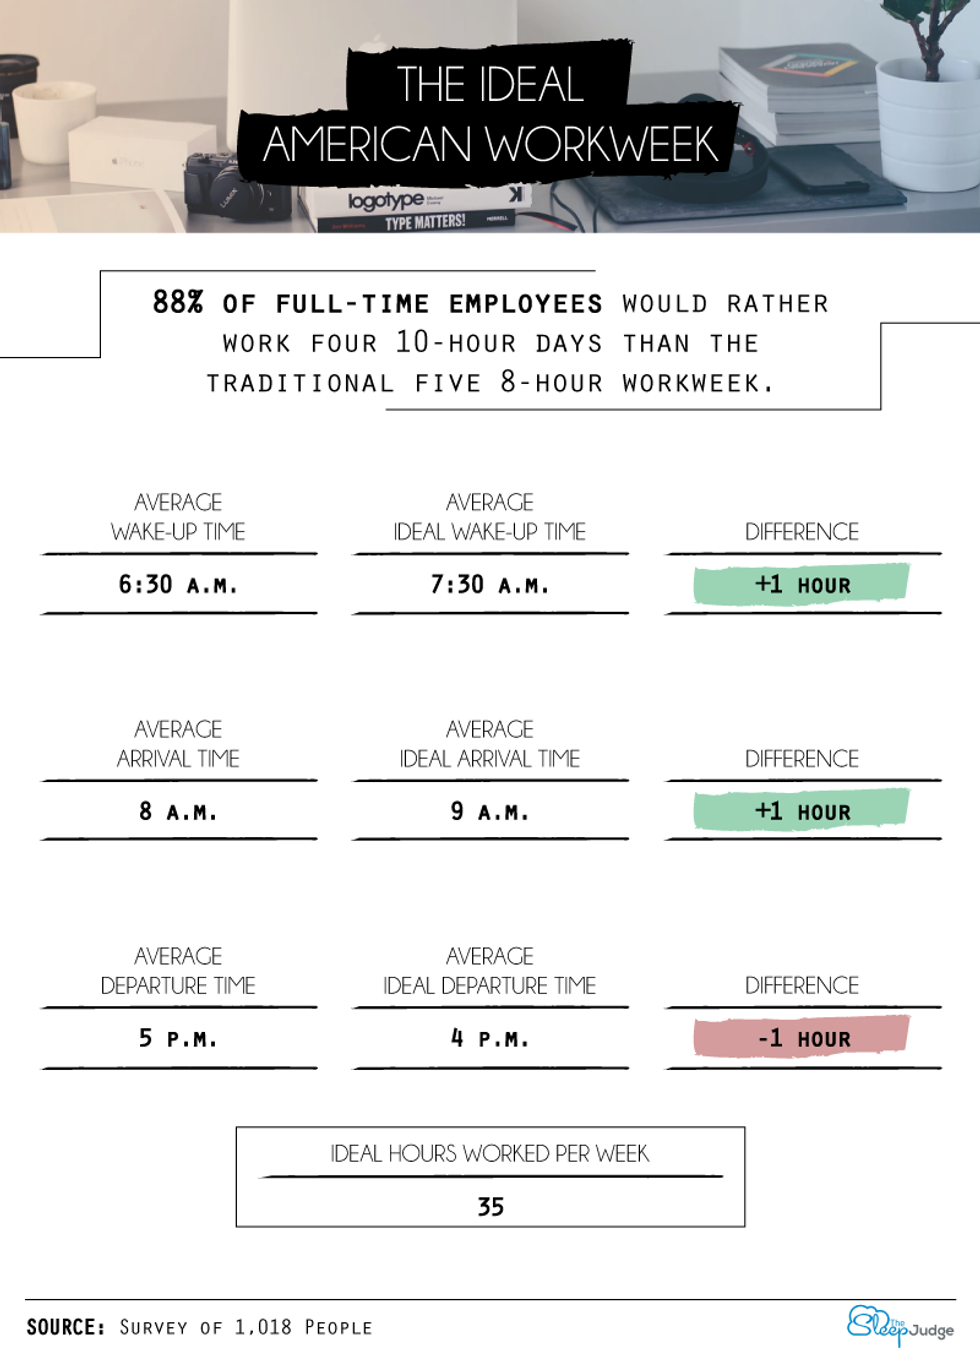 America's ideal work week: shorter hours, less pay - Big Think